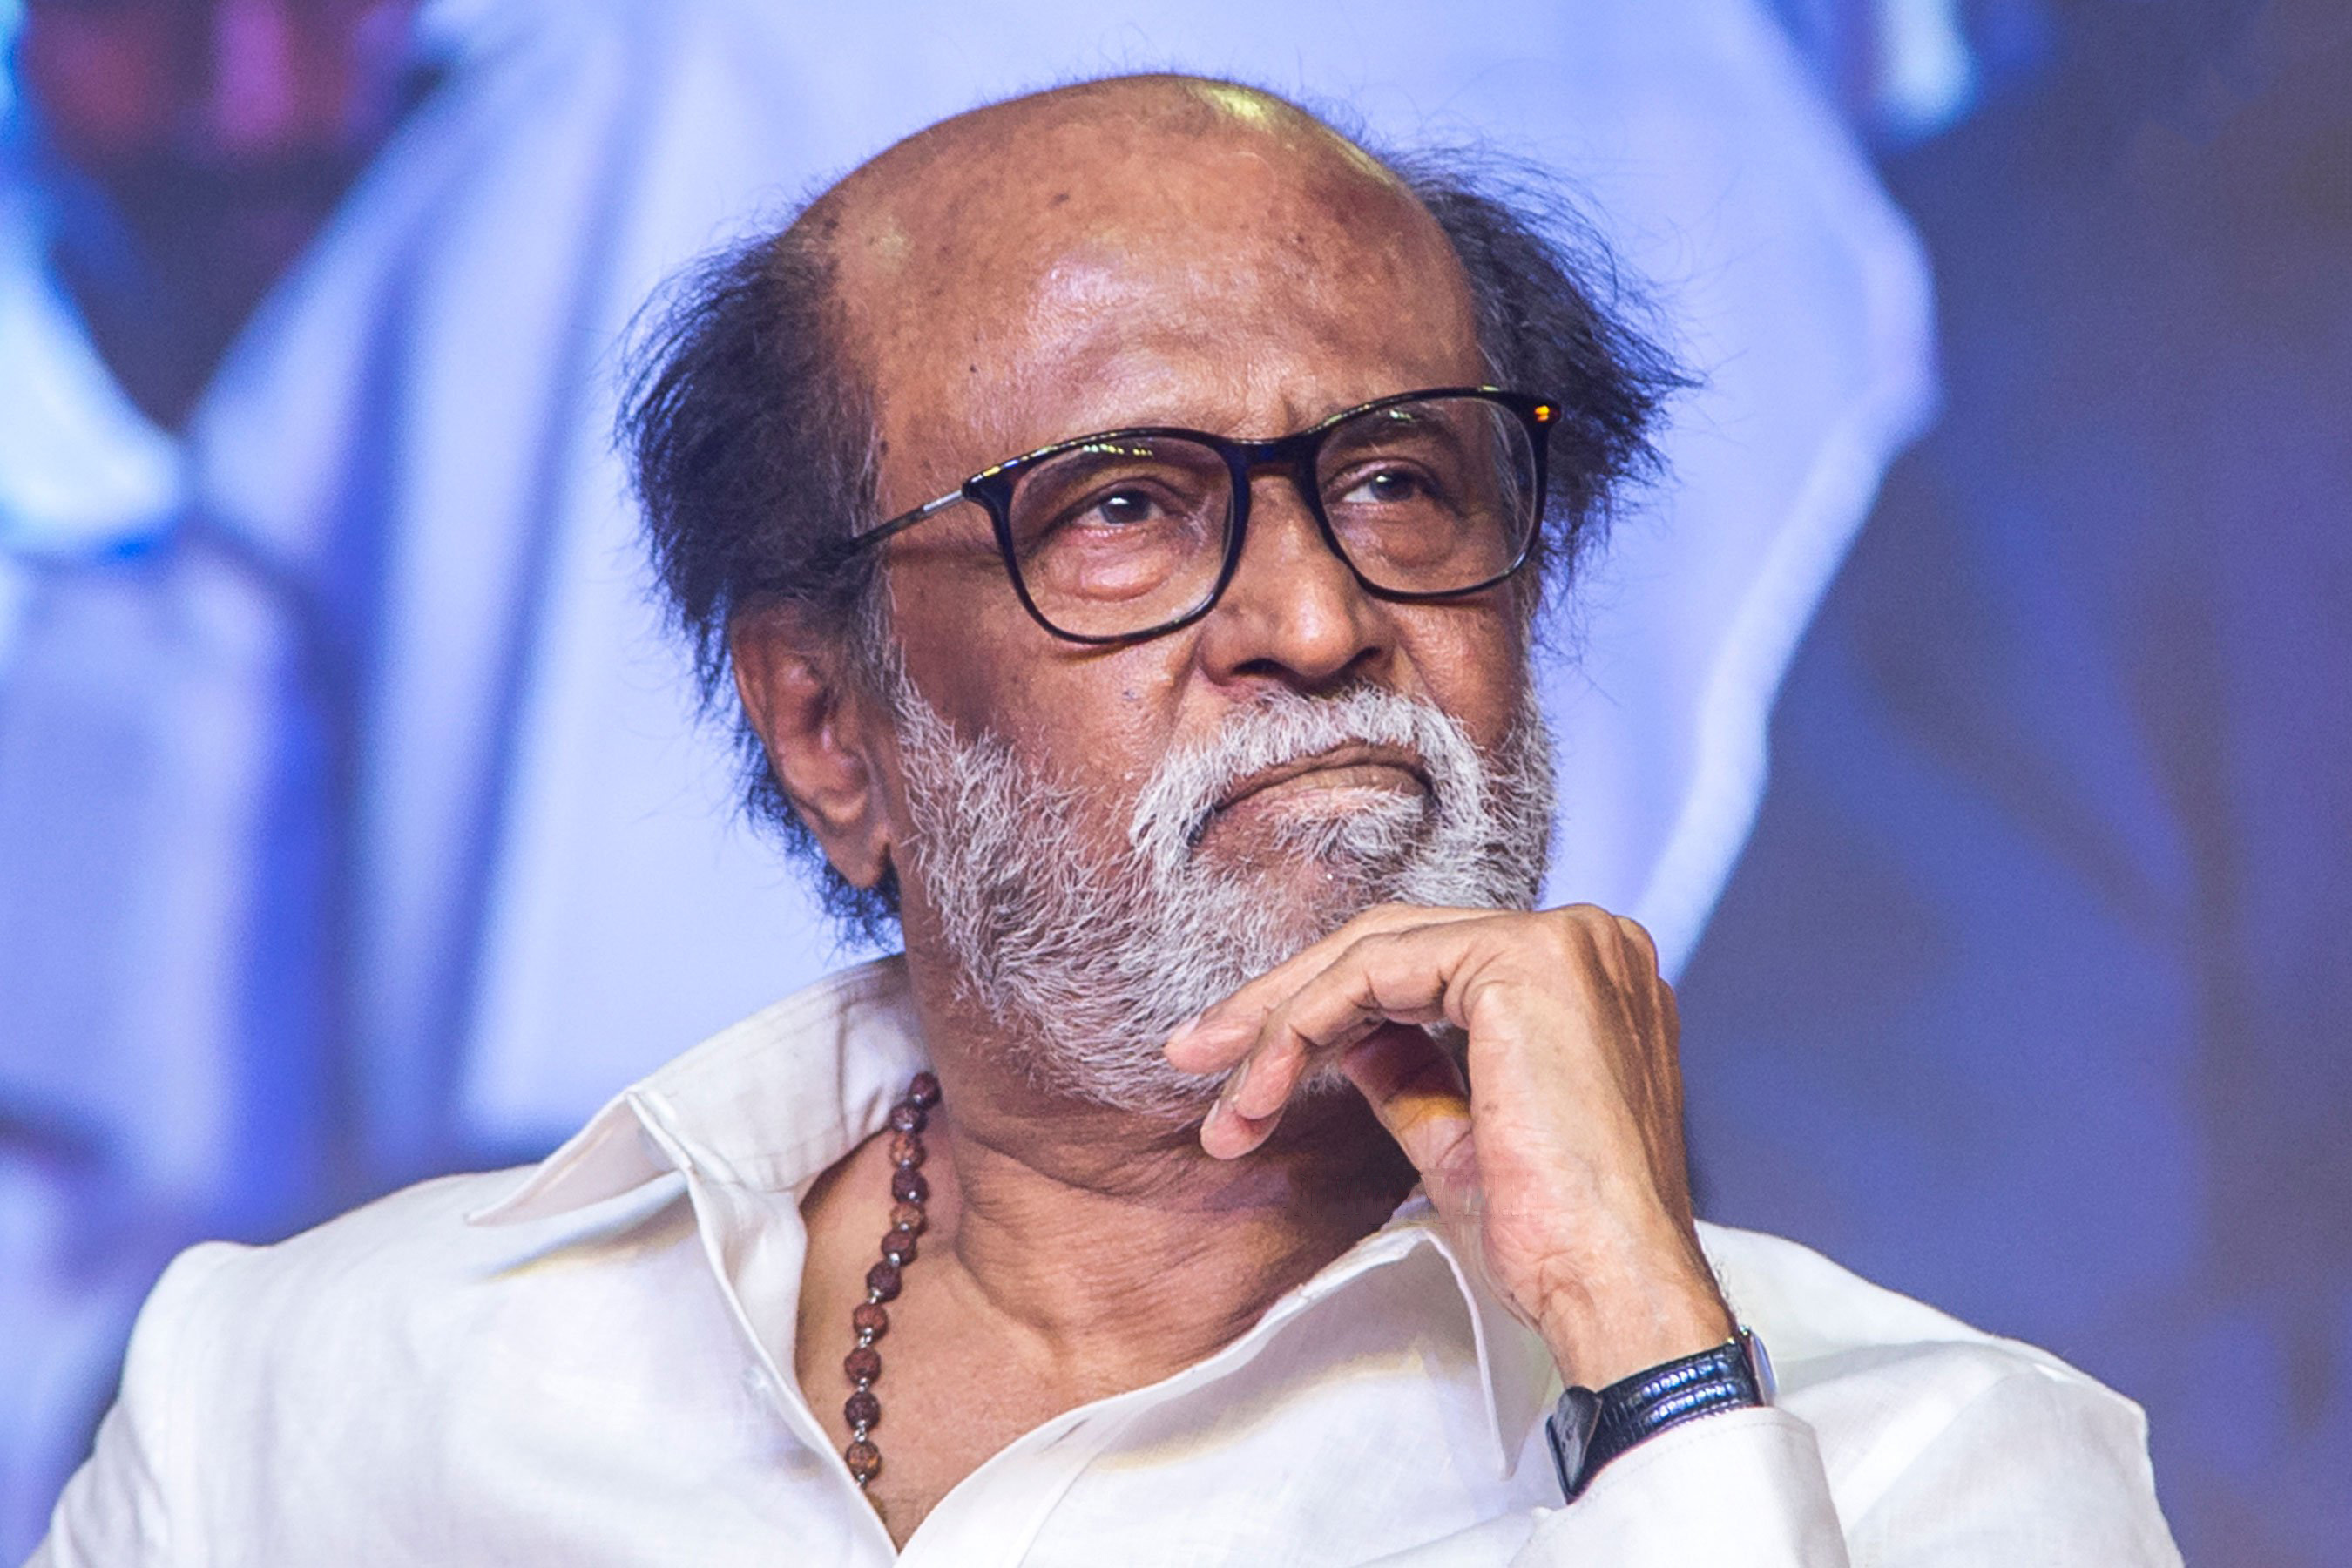 Rajinikanth tweeted that he will launch a political party in January